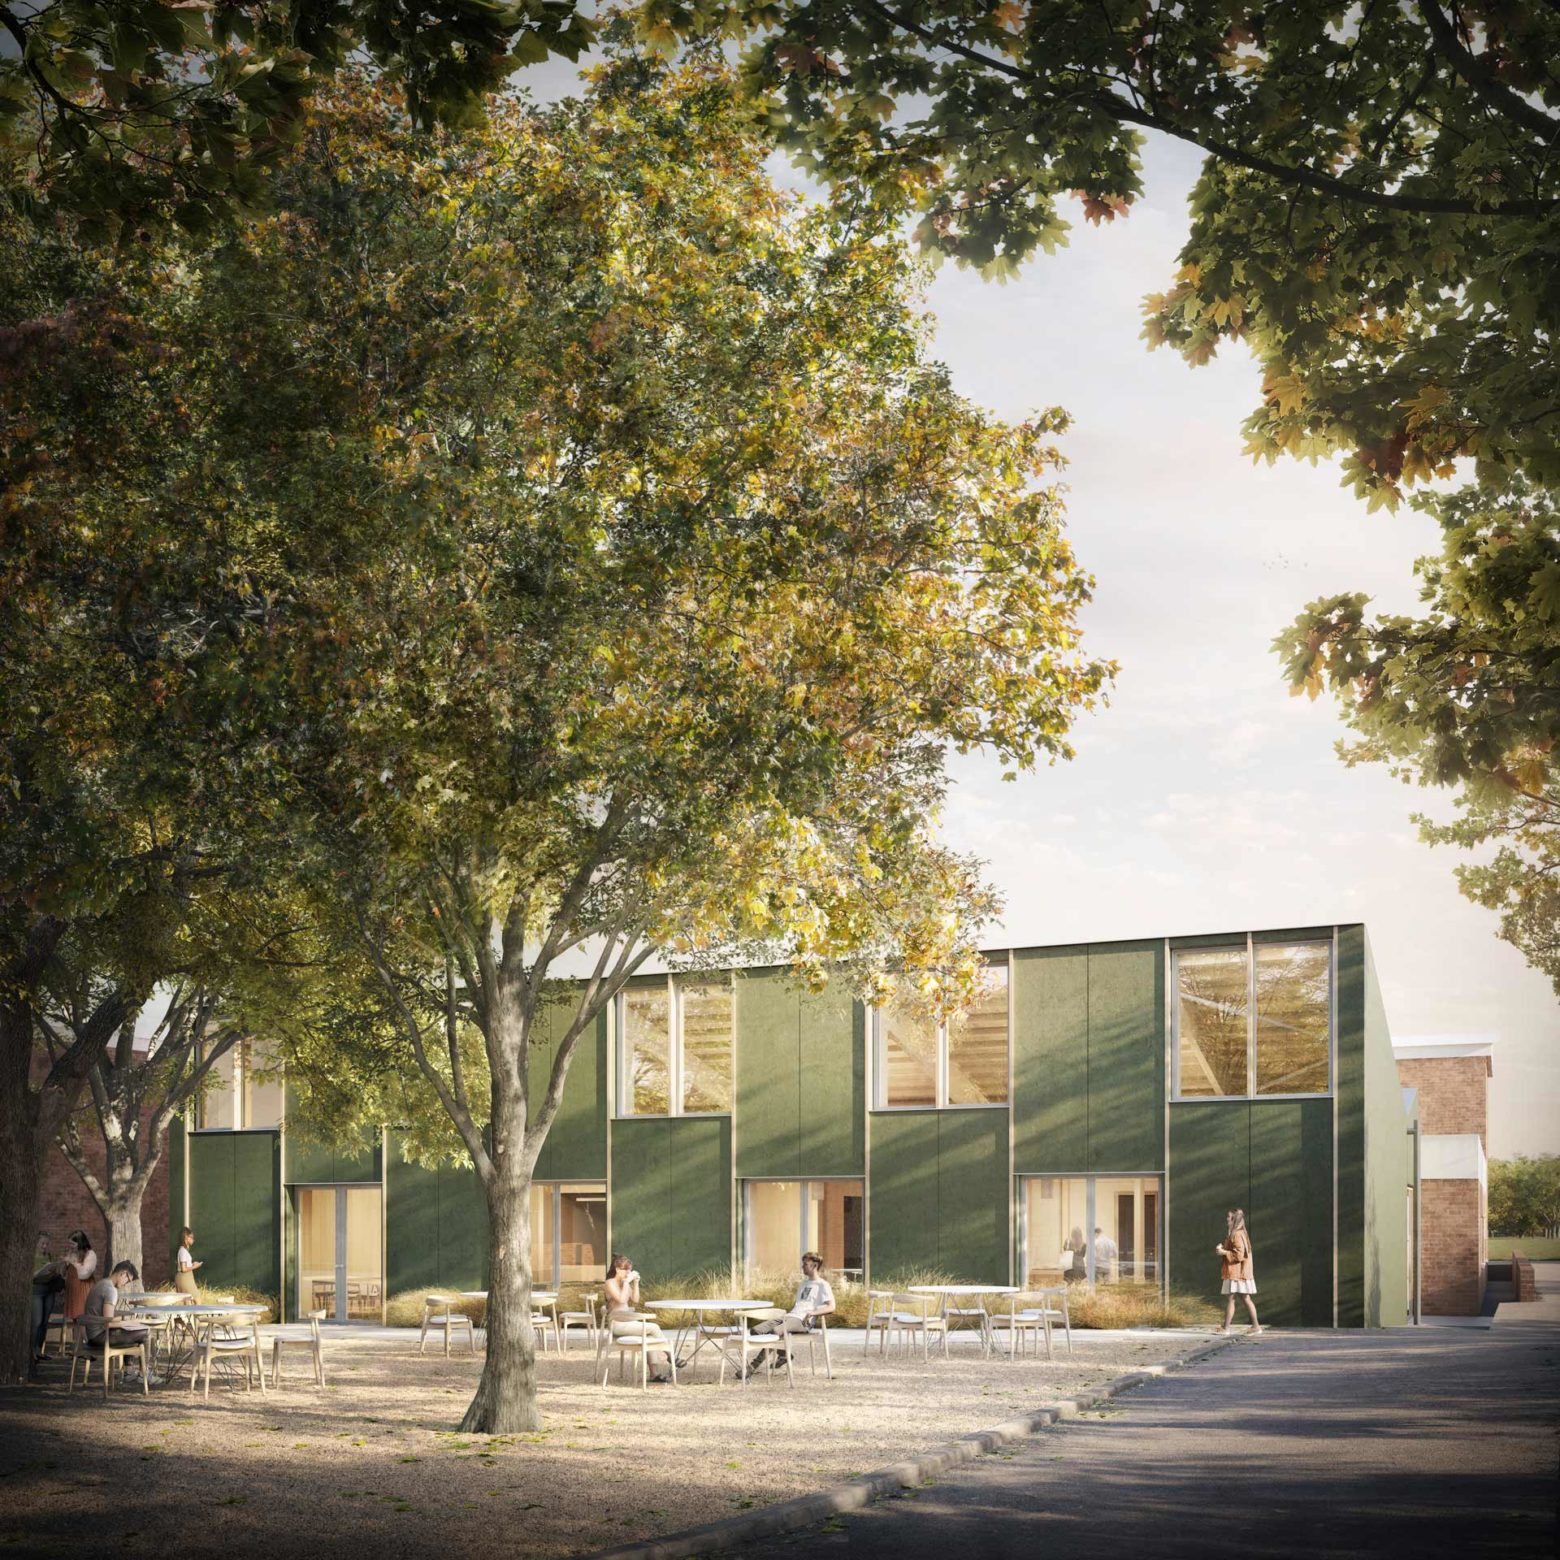 Planning submitted for school dining hall in Kent